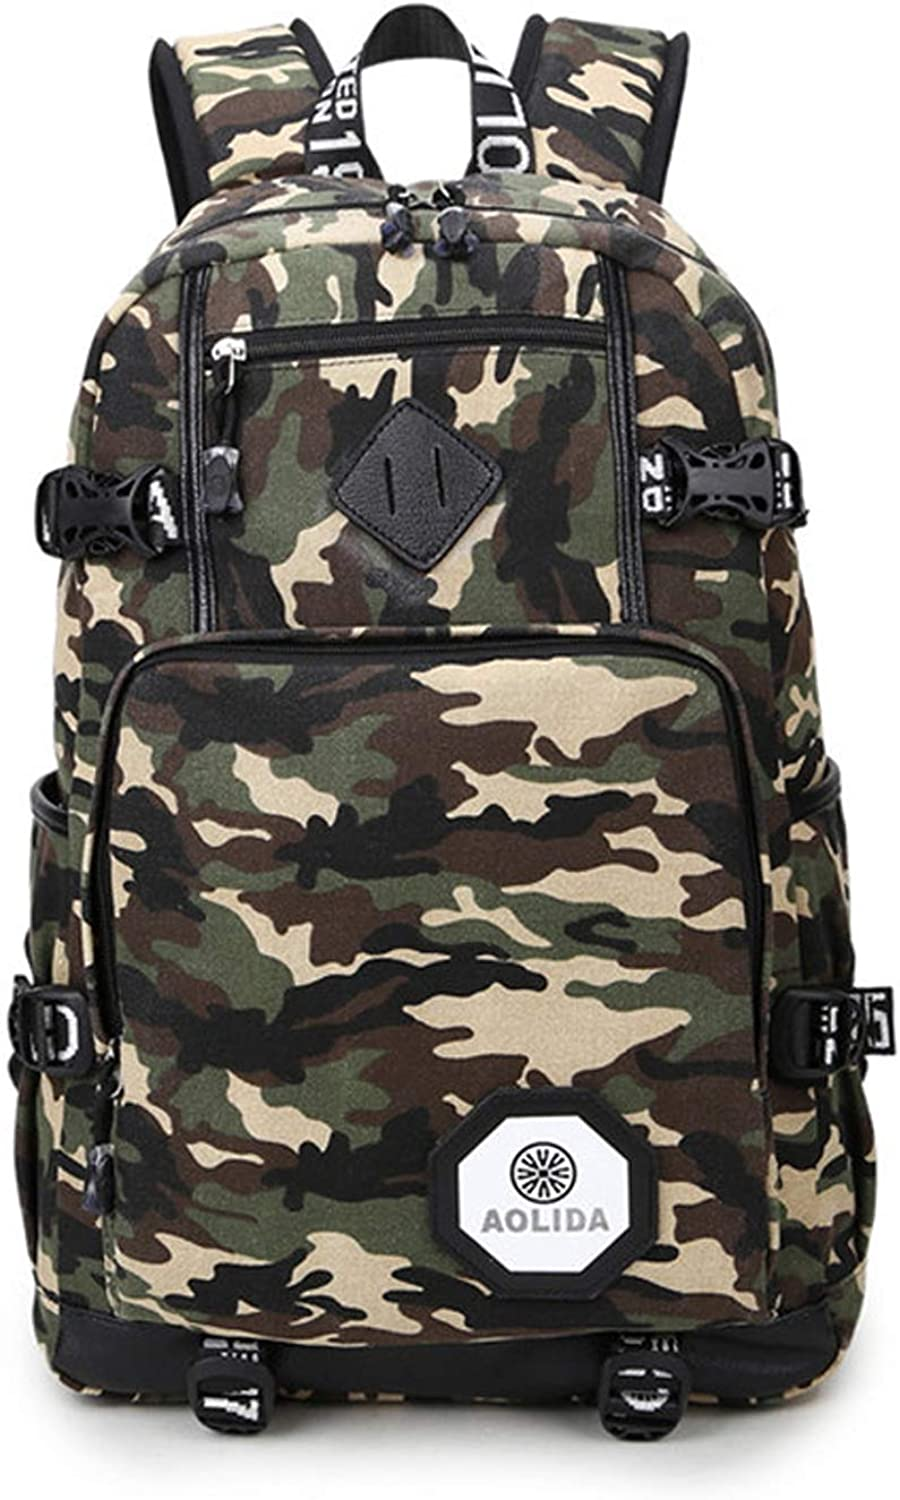 Travel laptop backpack, Business computer backpack with USB charging port, Suitable for 15.6-inch laptop, Camouflage fashion casual, Outdoor hiking waterproof camping backpack, Great gift for both boys and girls students